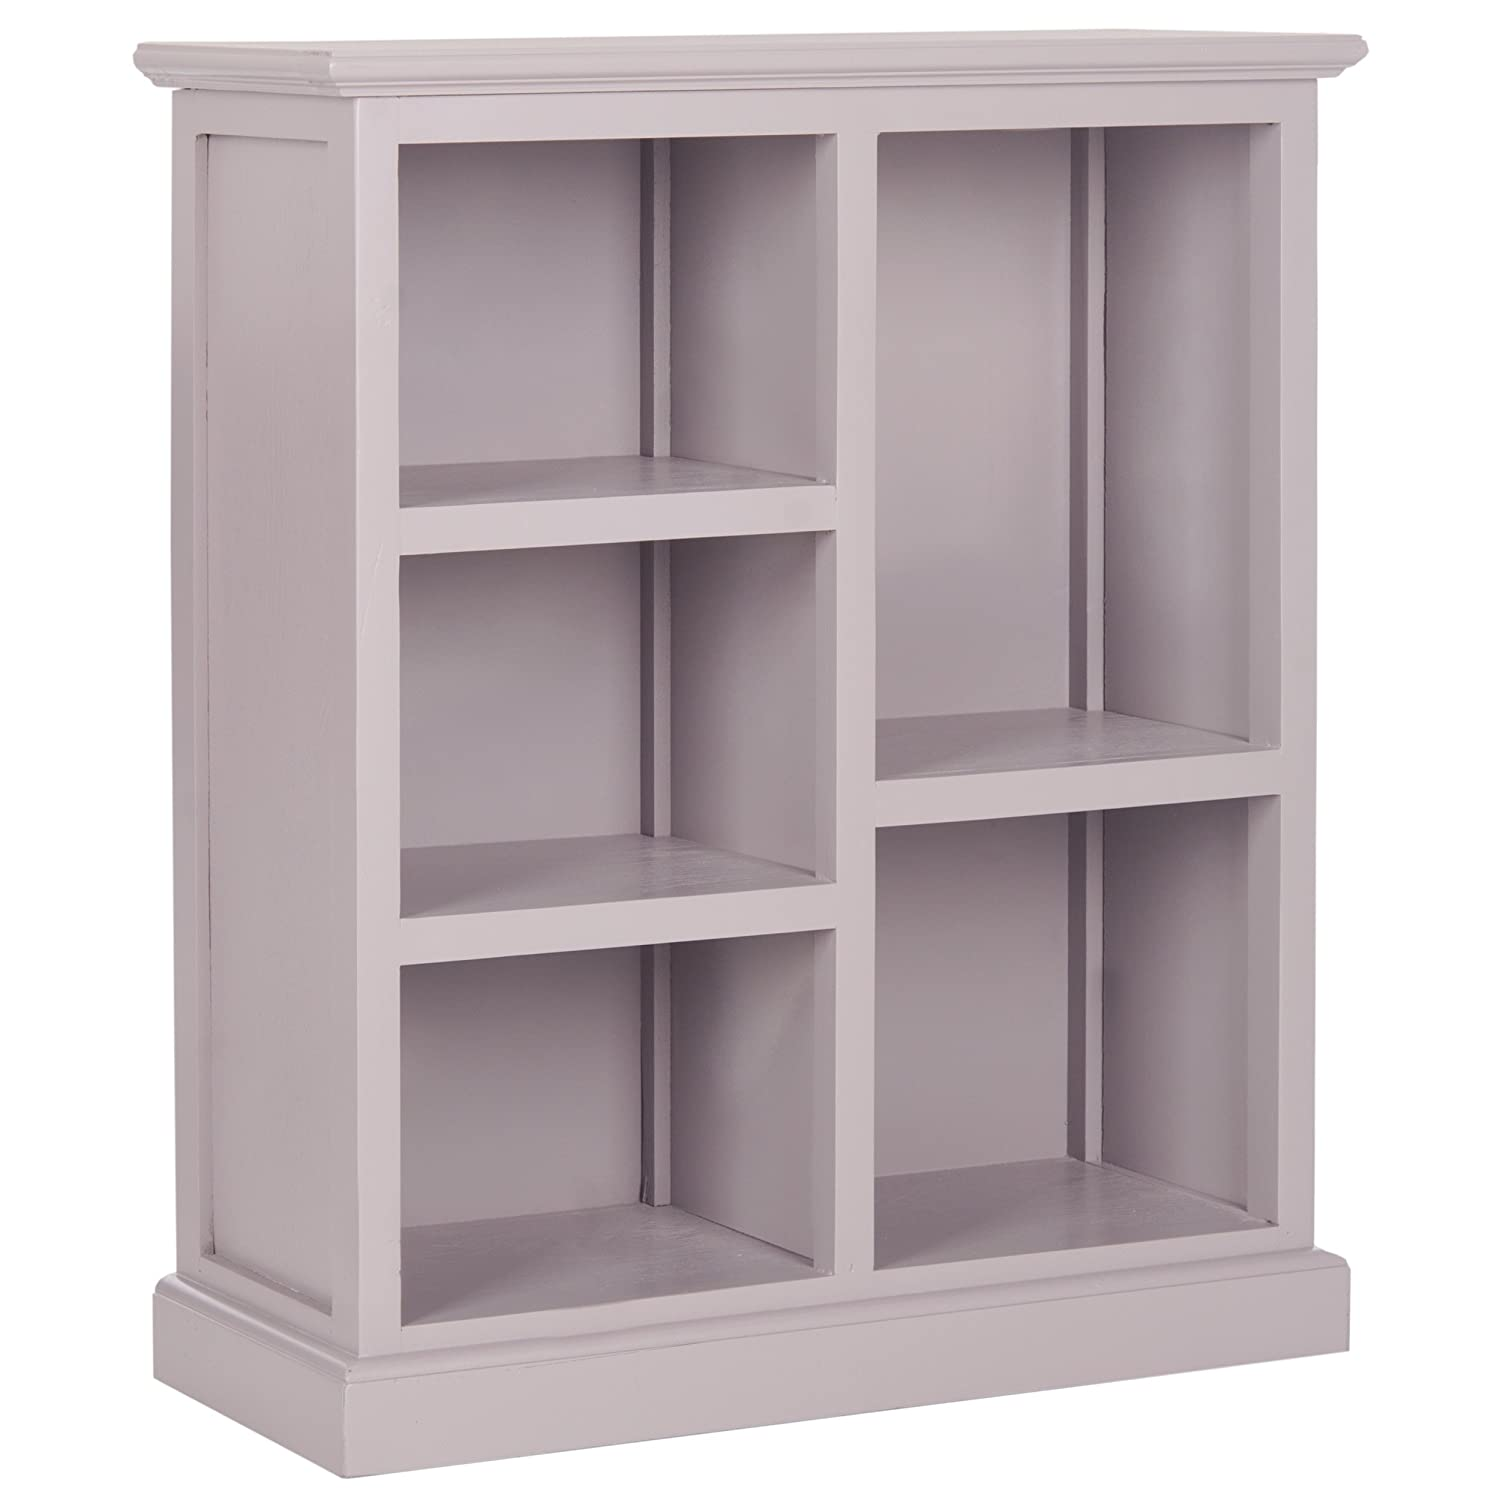 Safavieh American Homes Collection Maralah Quartz Grey Bookcase